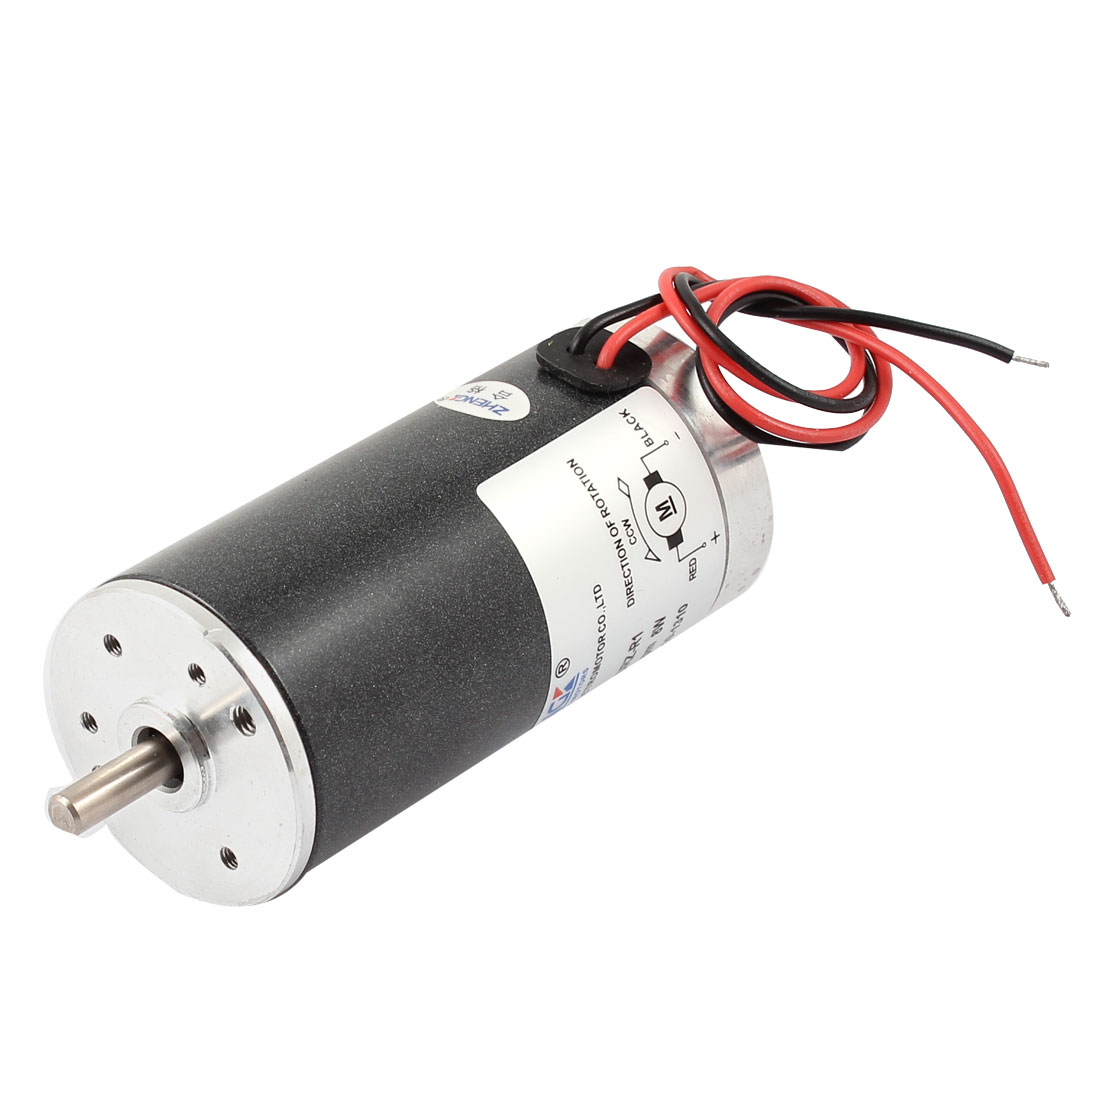 DC 24V 4000 RPM Speed 8W Power 5mm Dia Shaft Wired Connector Metal Electric Motor